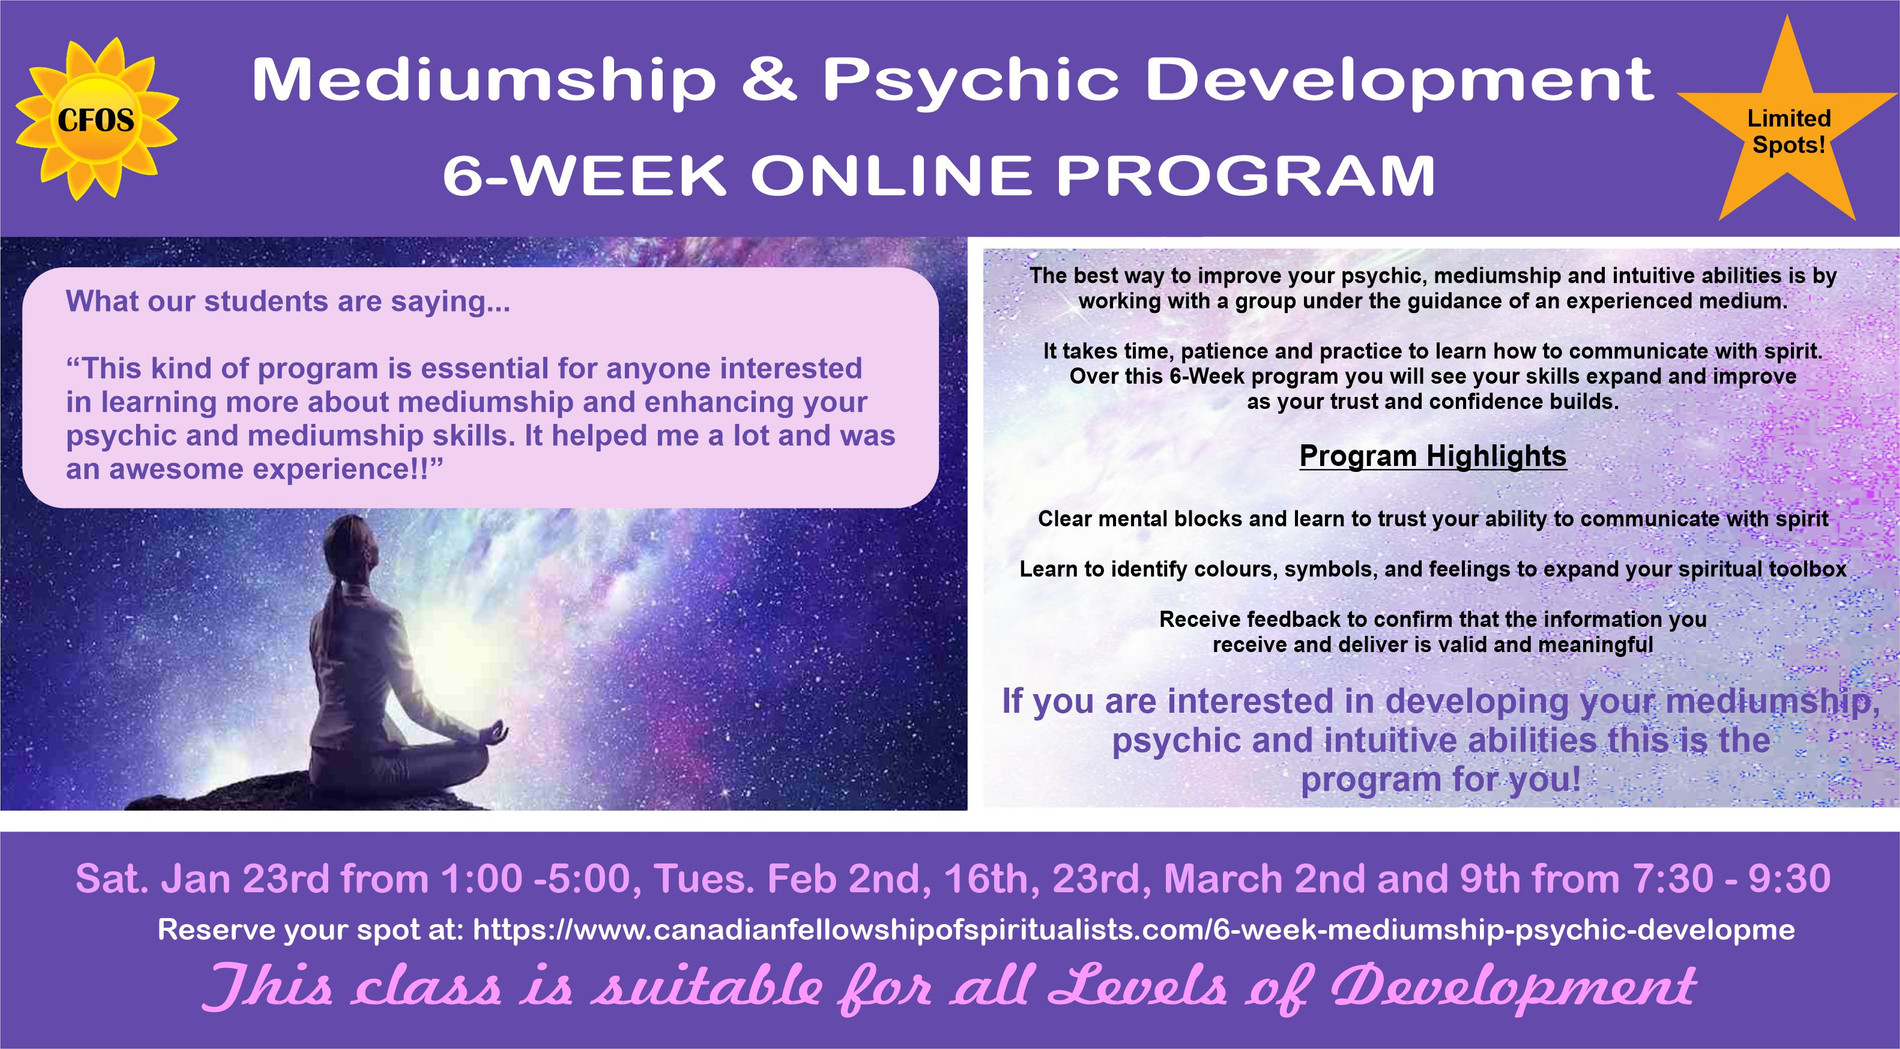 6-Week Mediumship & Psychic Development Program